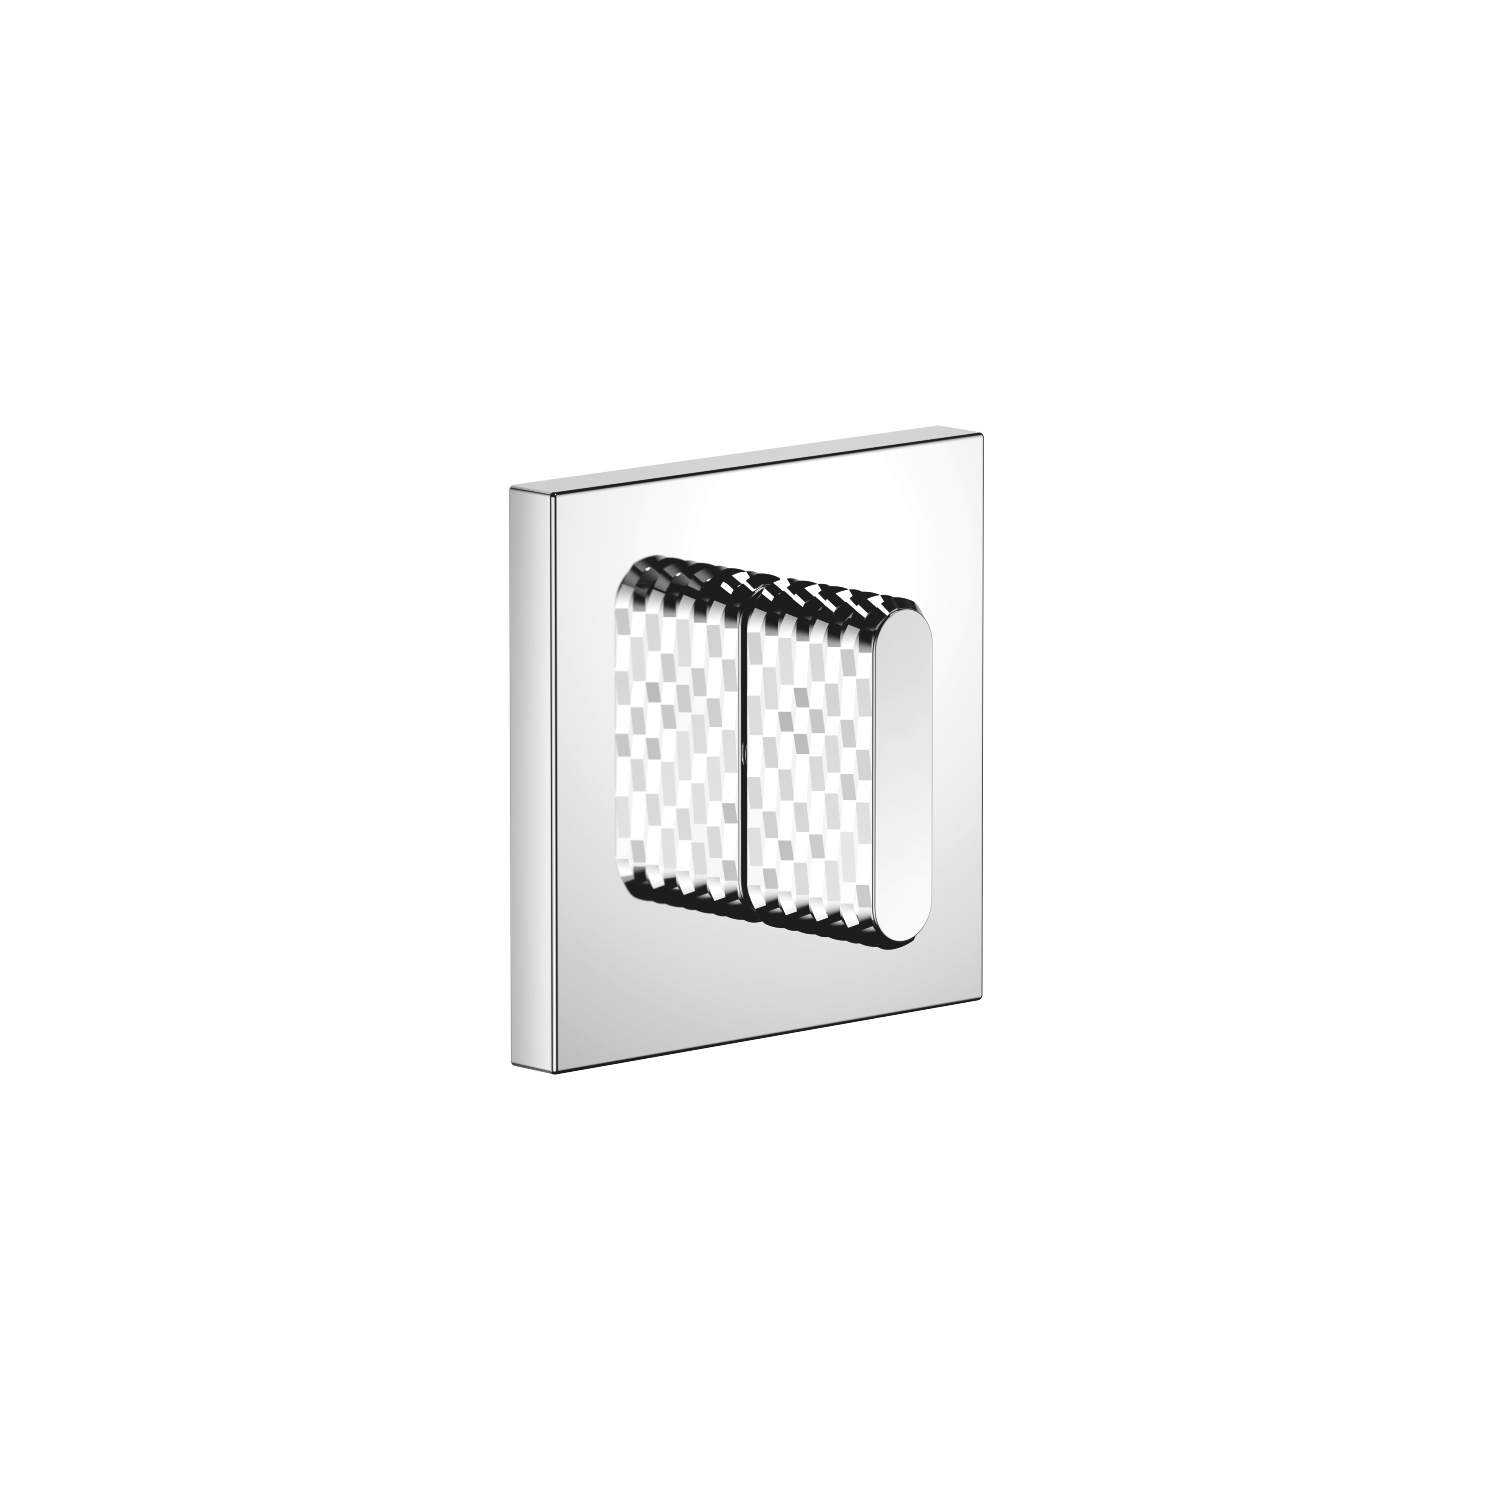 Concealed two- and three-way diverter - polished chrome - 36 102 705-00